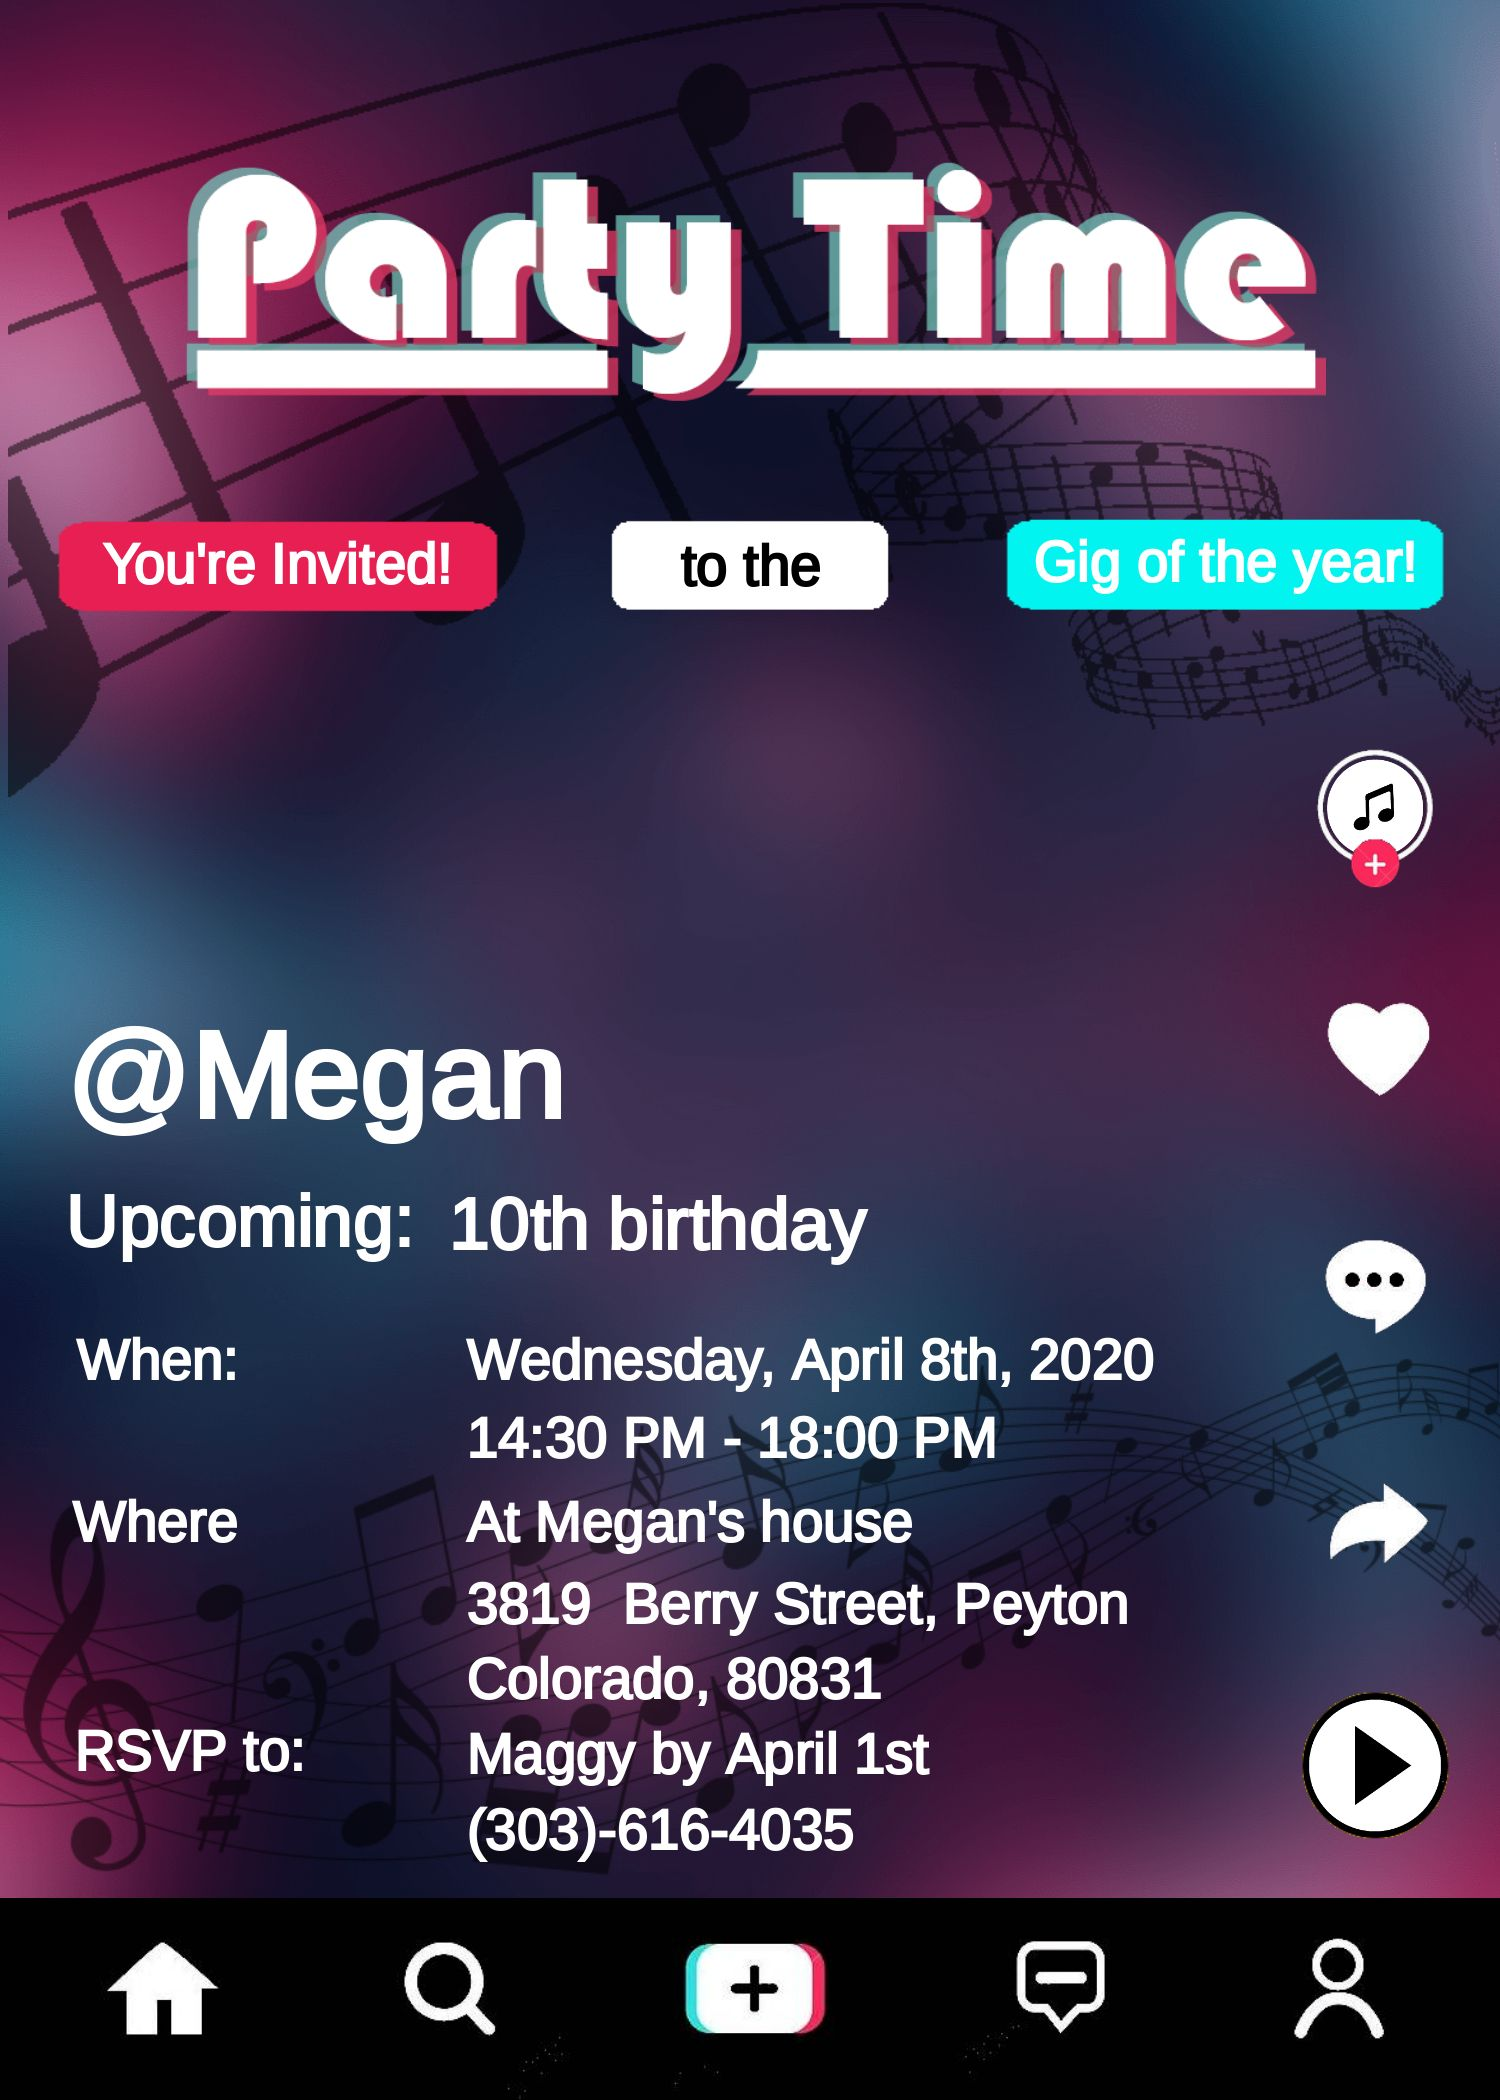 Tik Tok Inspired Birthday Invitation Unique Tik Tok Editable Birthday Invitation Template Edit Online Direct Download Easy Printable Jpeg Birthday Invitation Templates Birthday Invitations Birthday Party For Teens